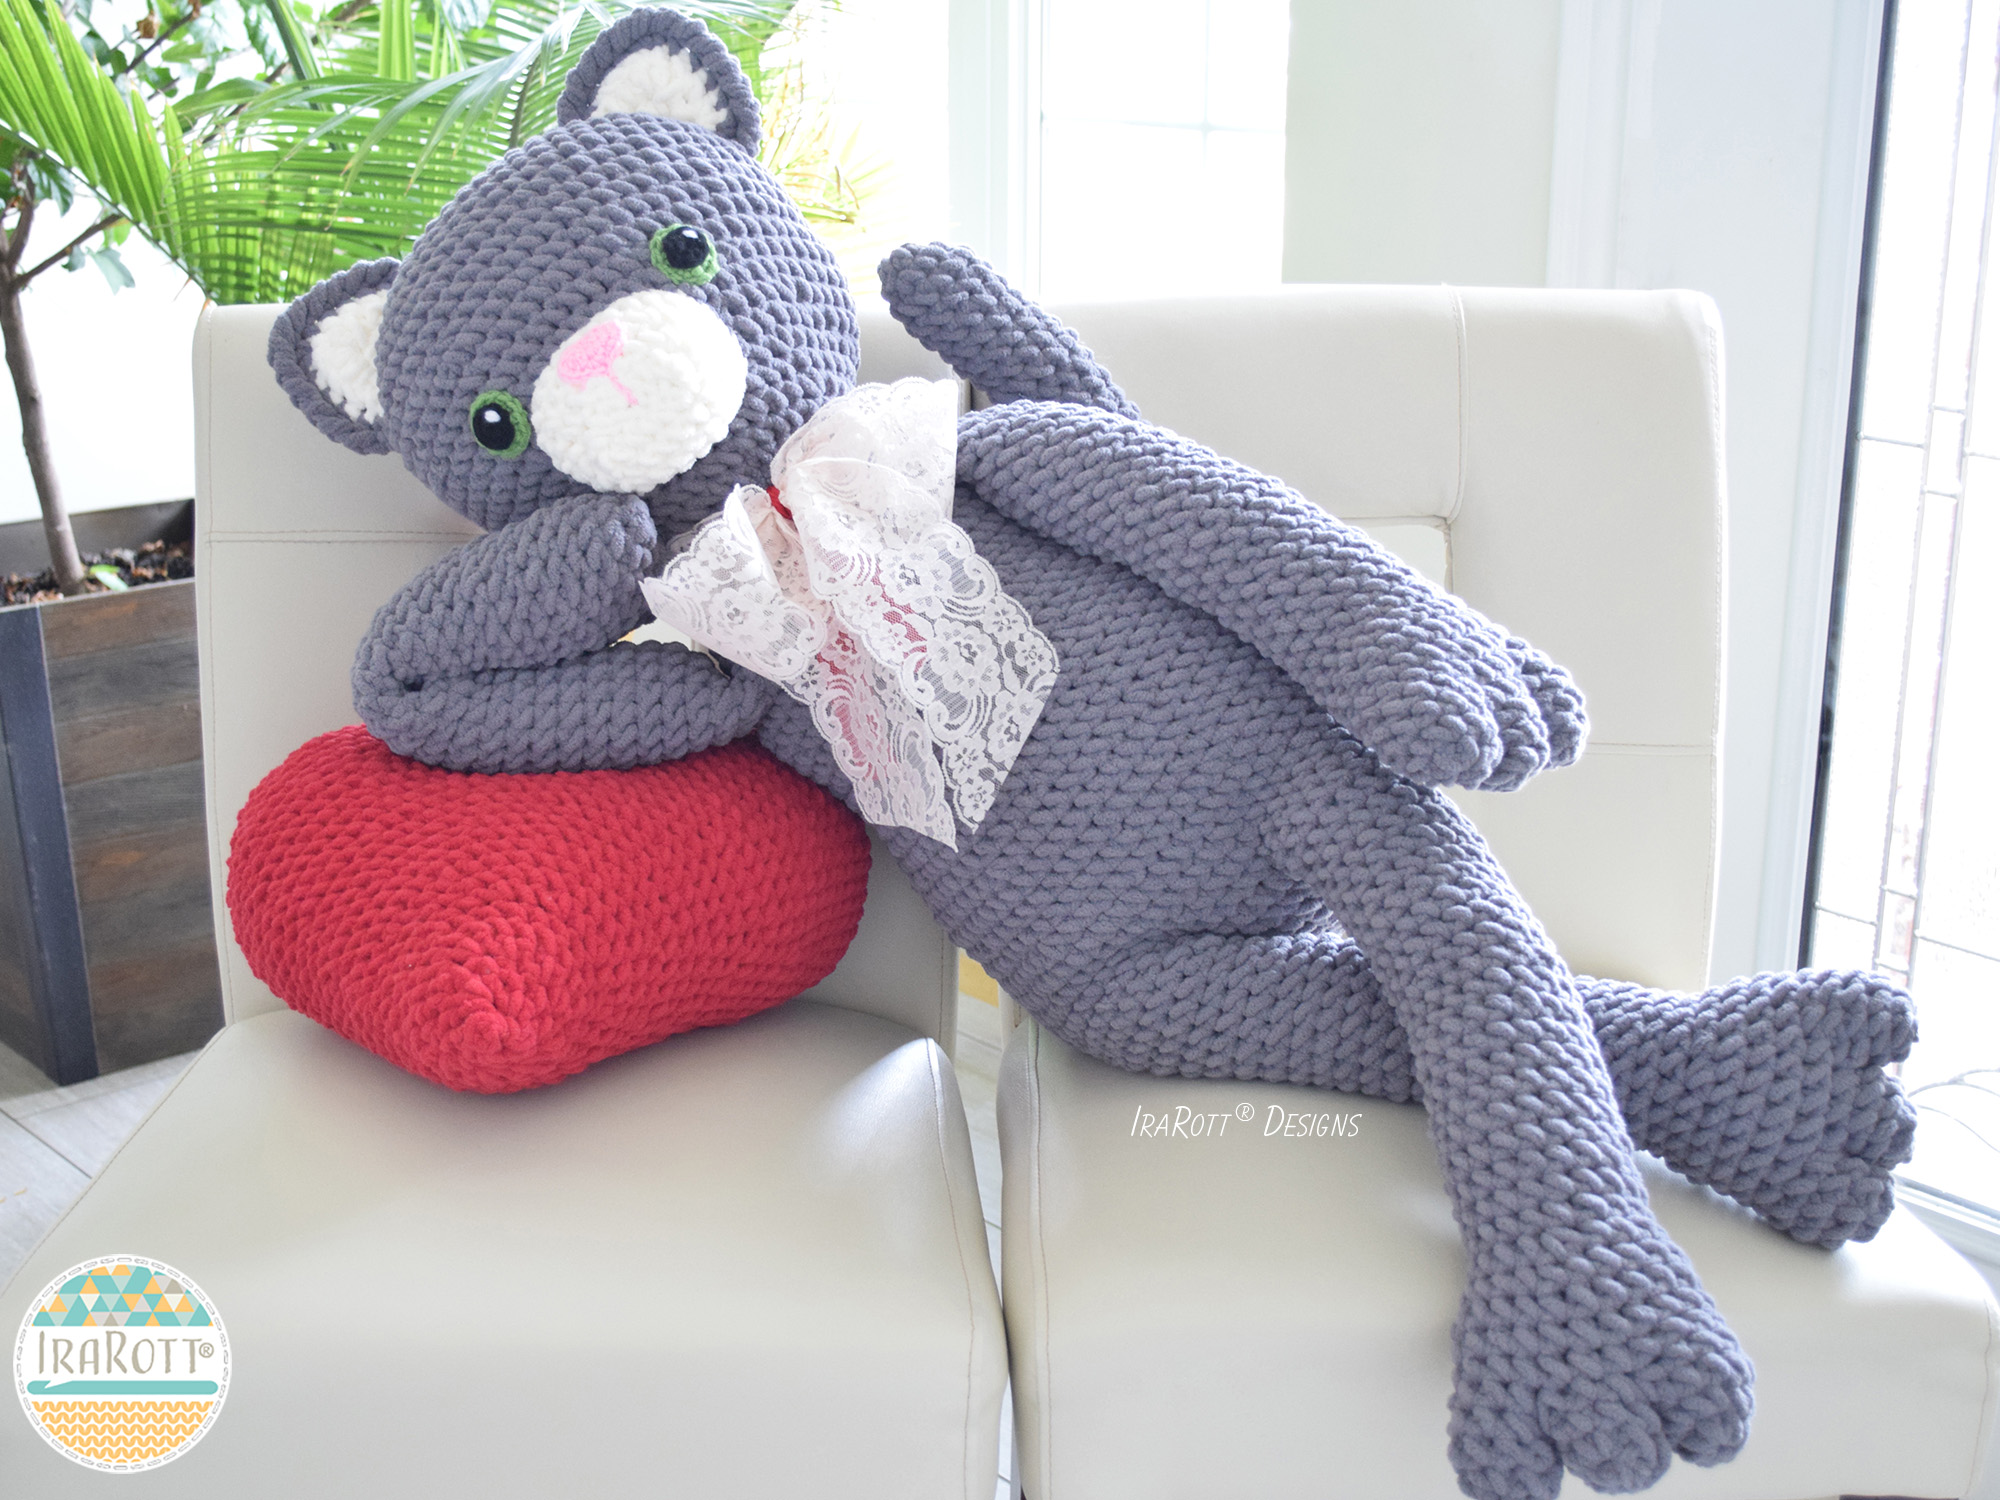 Amigurumi Ant Free Crochet Pattern | Easter crochet patterns ... | 1125x1500